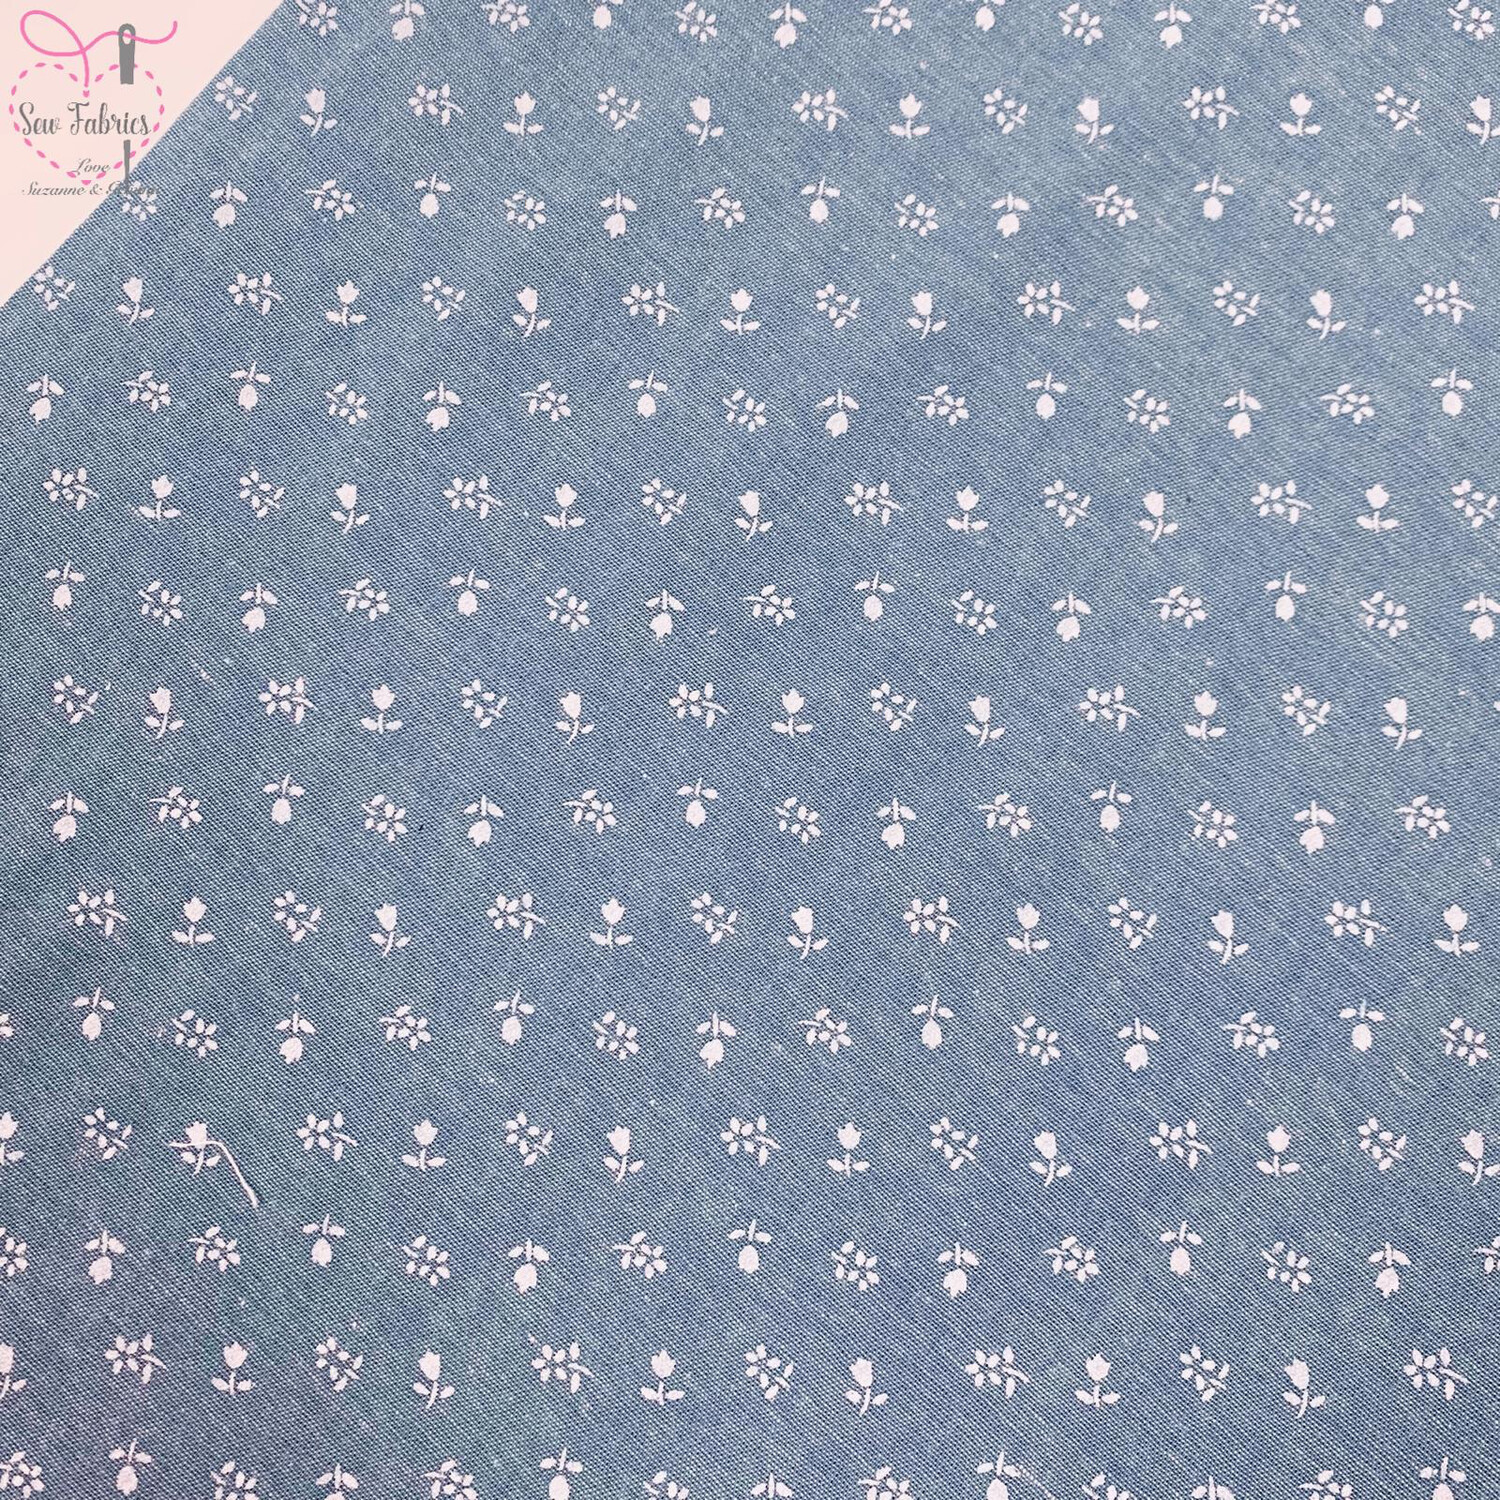 Denim Chambray Tulip Print Wide Width 100% Cotton Fabric